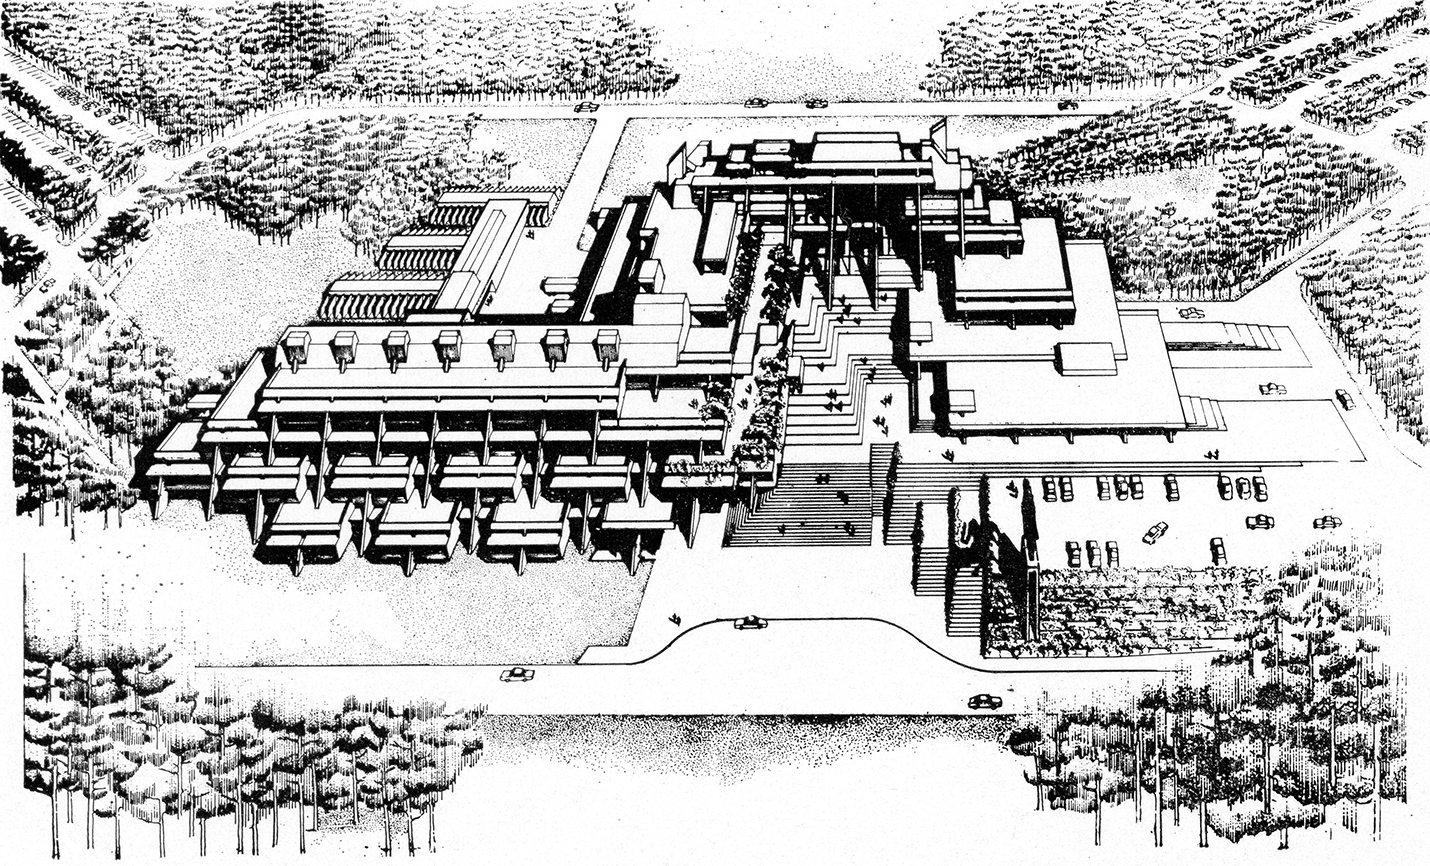 Burroughs Wellcome Company, Research Triangle Park, North Carolina. Early Scheme Aerial Perspective Rendering.